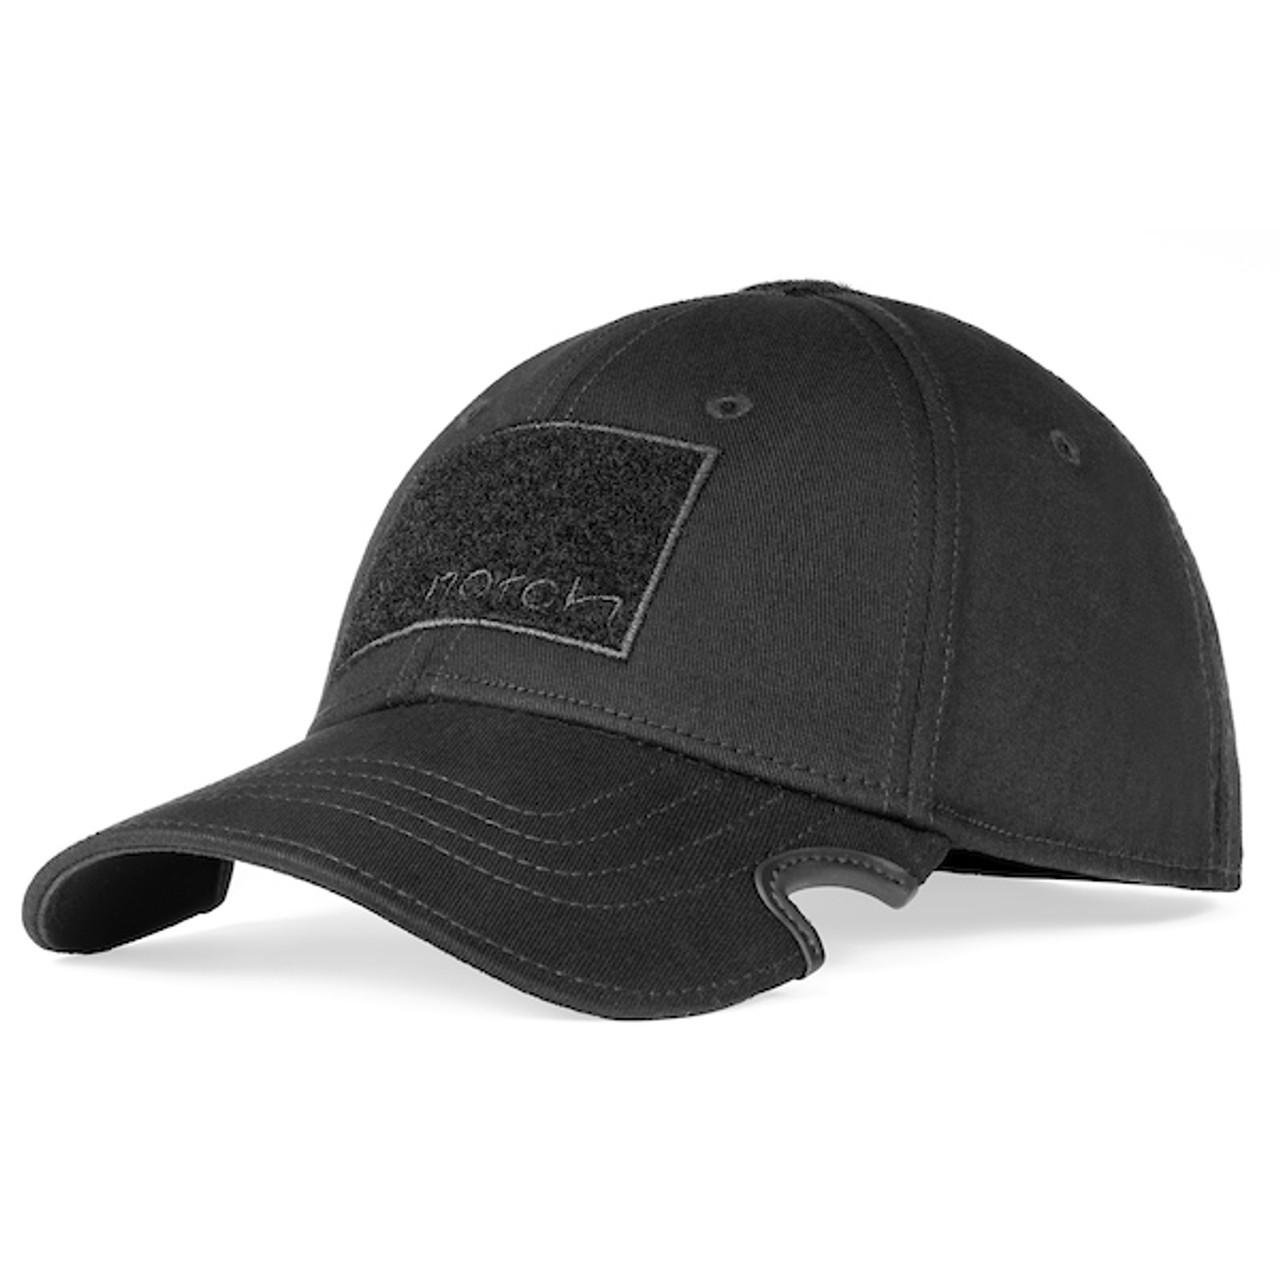 Notch Gear Notch Classic Fitted Black Operator Front